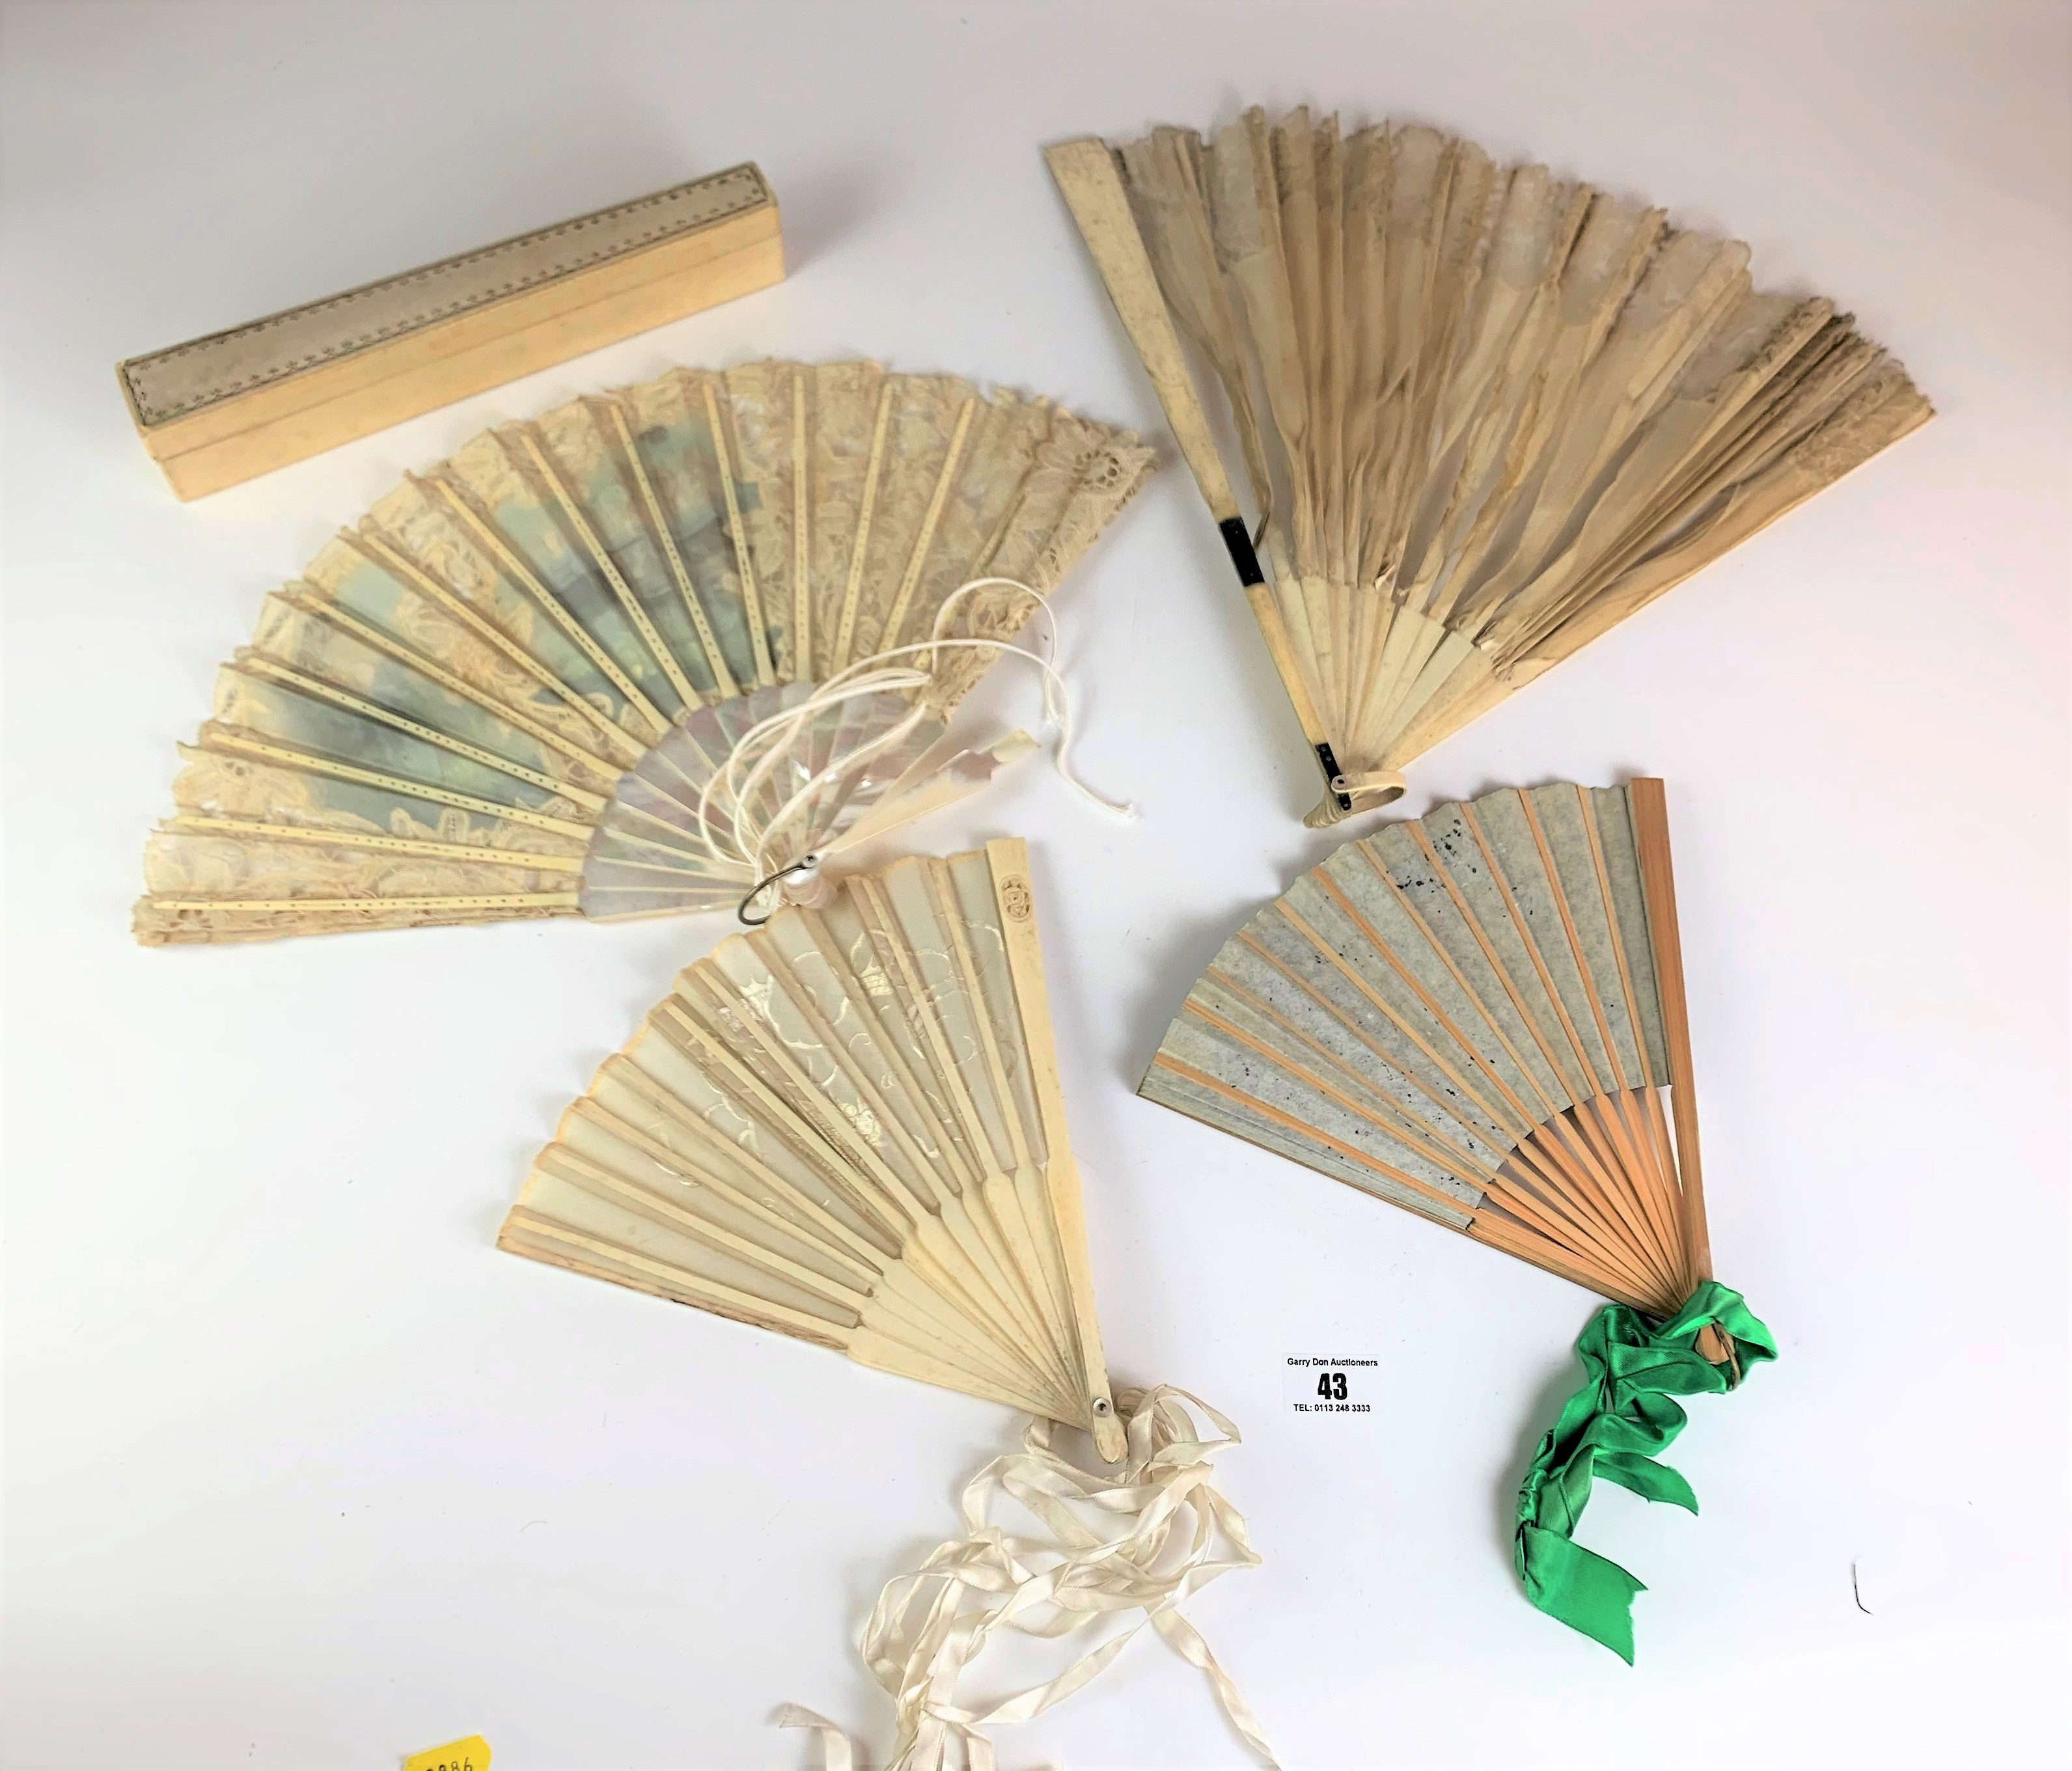 4 fans - Image 6 of 6